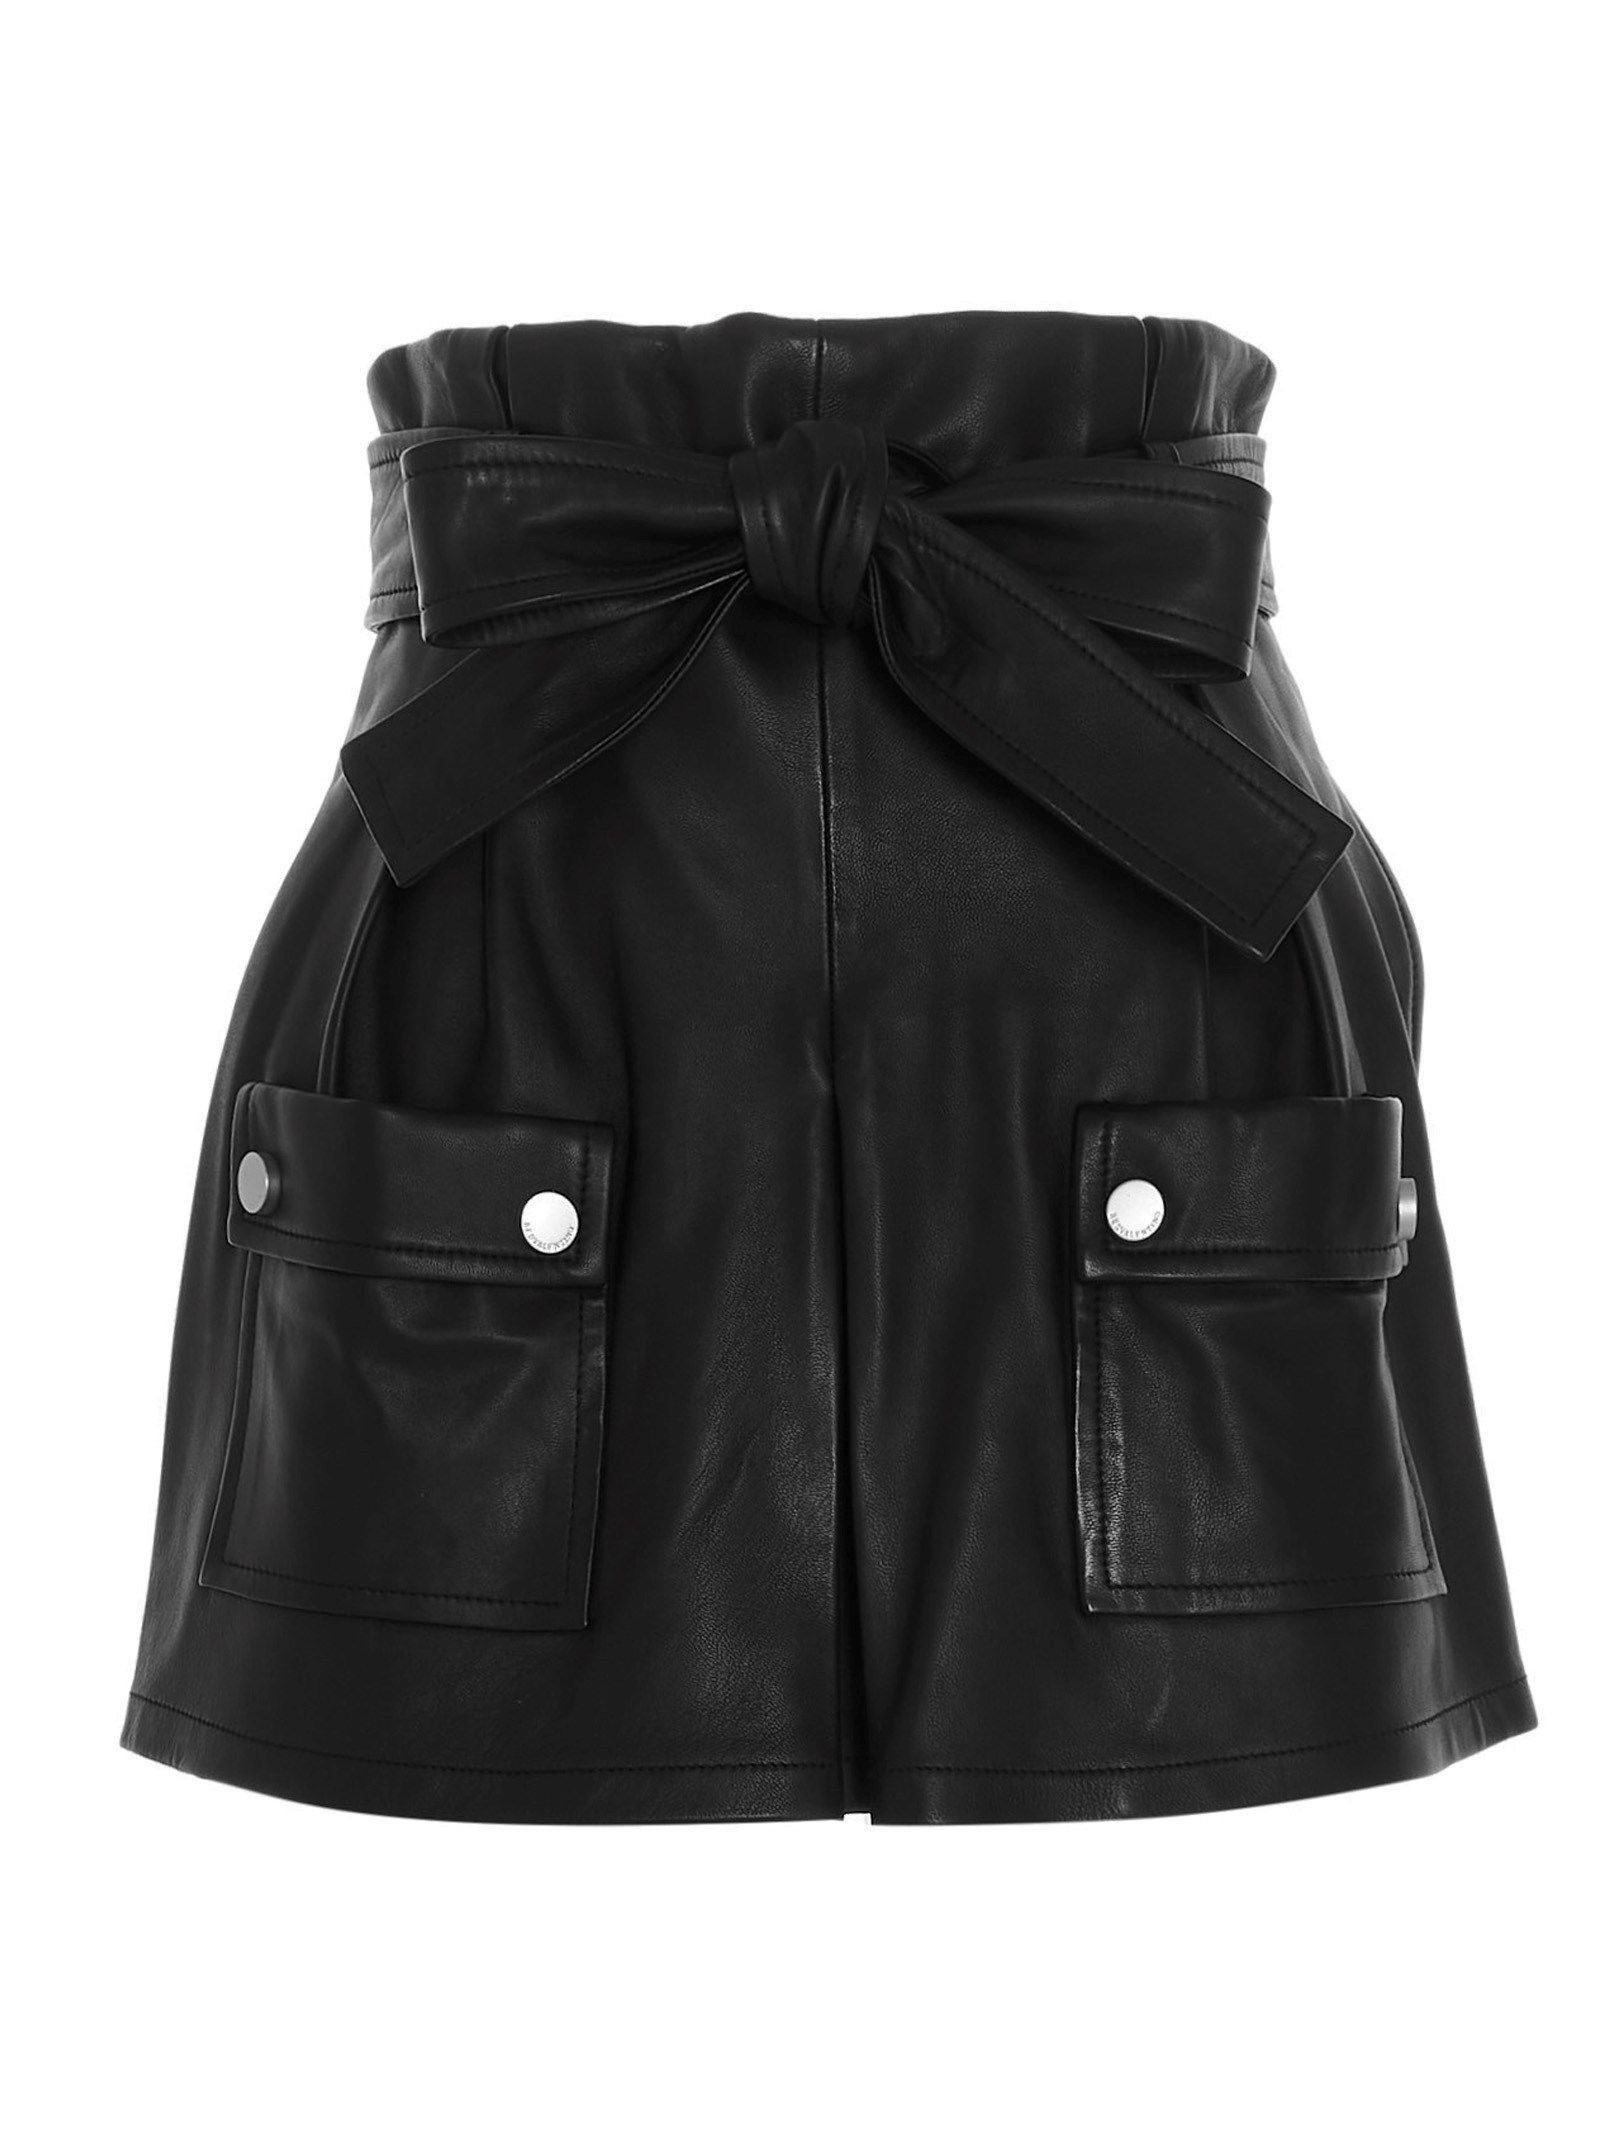 Red Valentino Leathers RED VALENTINO WOMEN'S BLACK LEATHER SHORTS